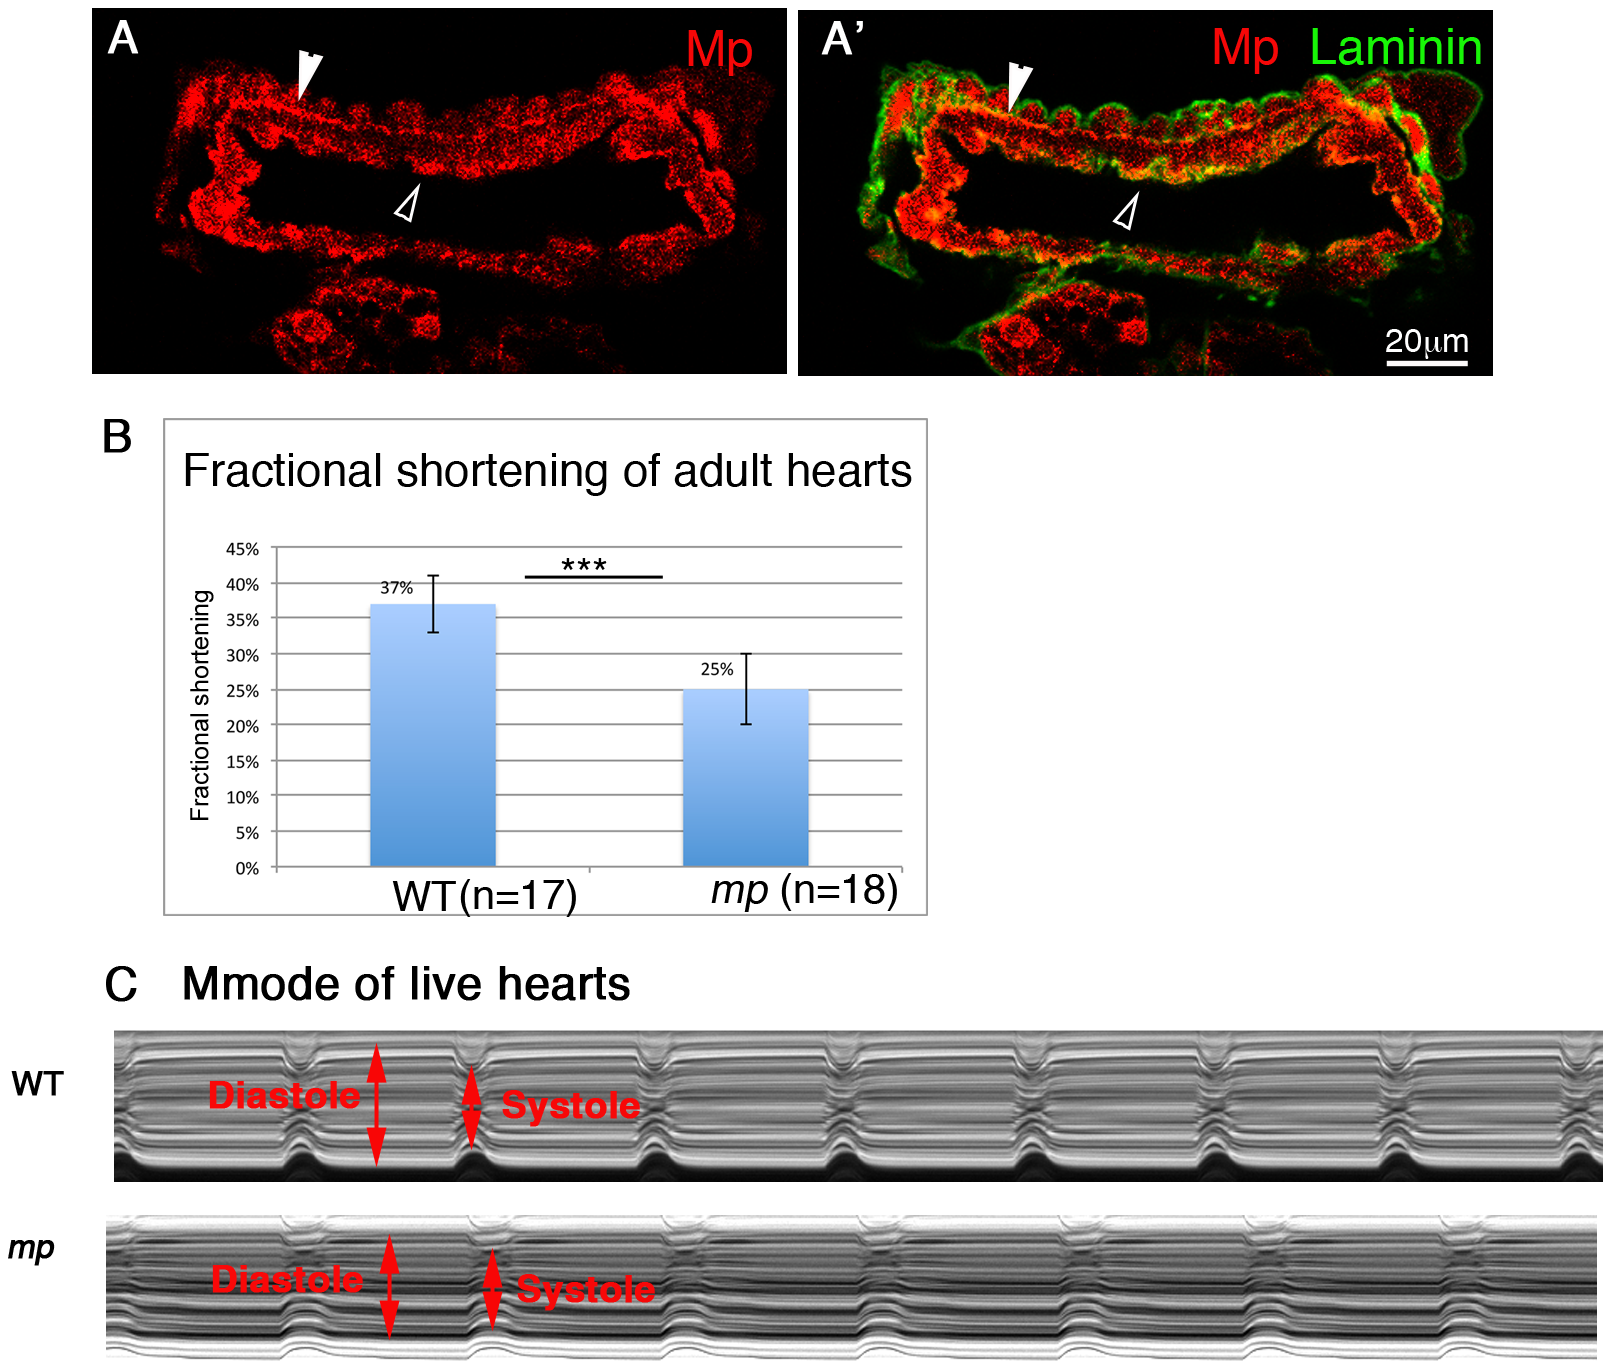 Mp activity is essential for proper heart contraction of adult fly hearts.